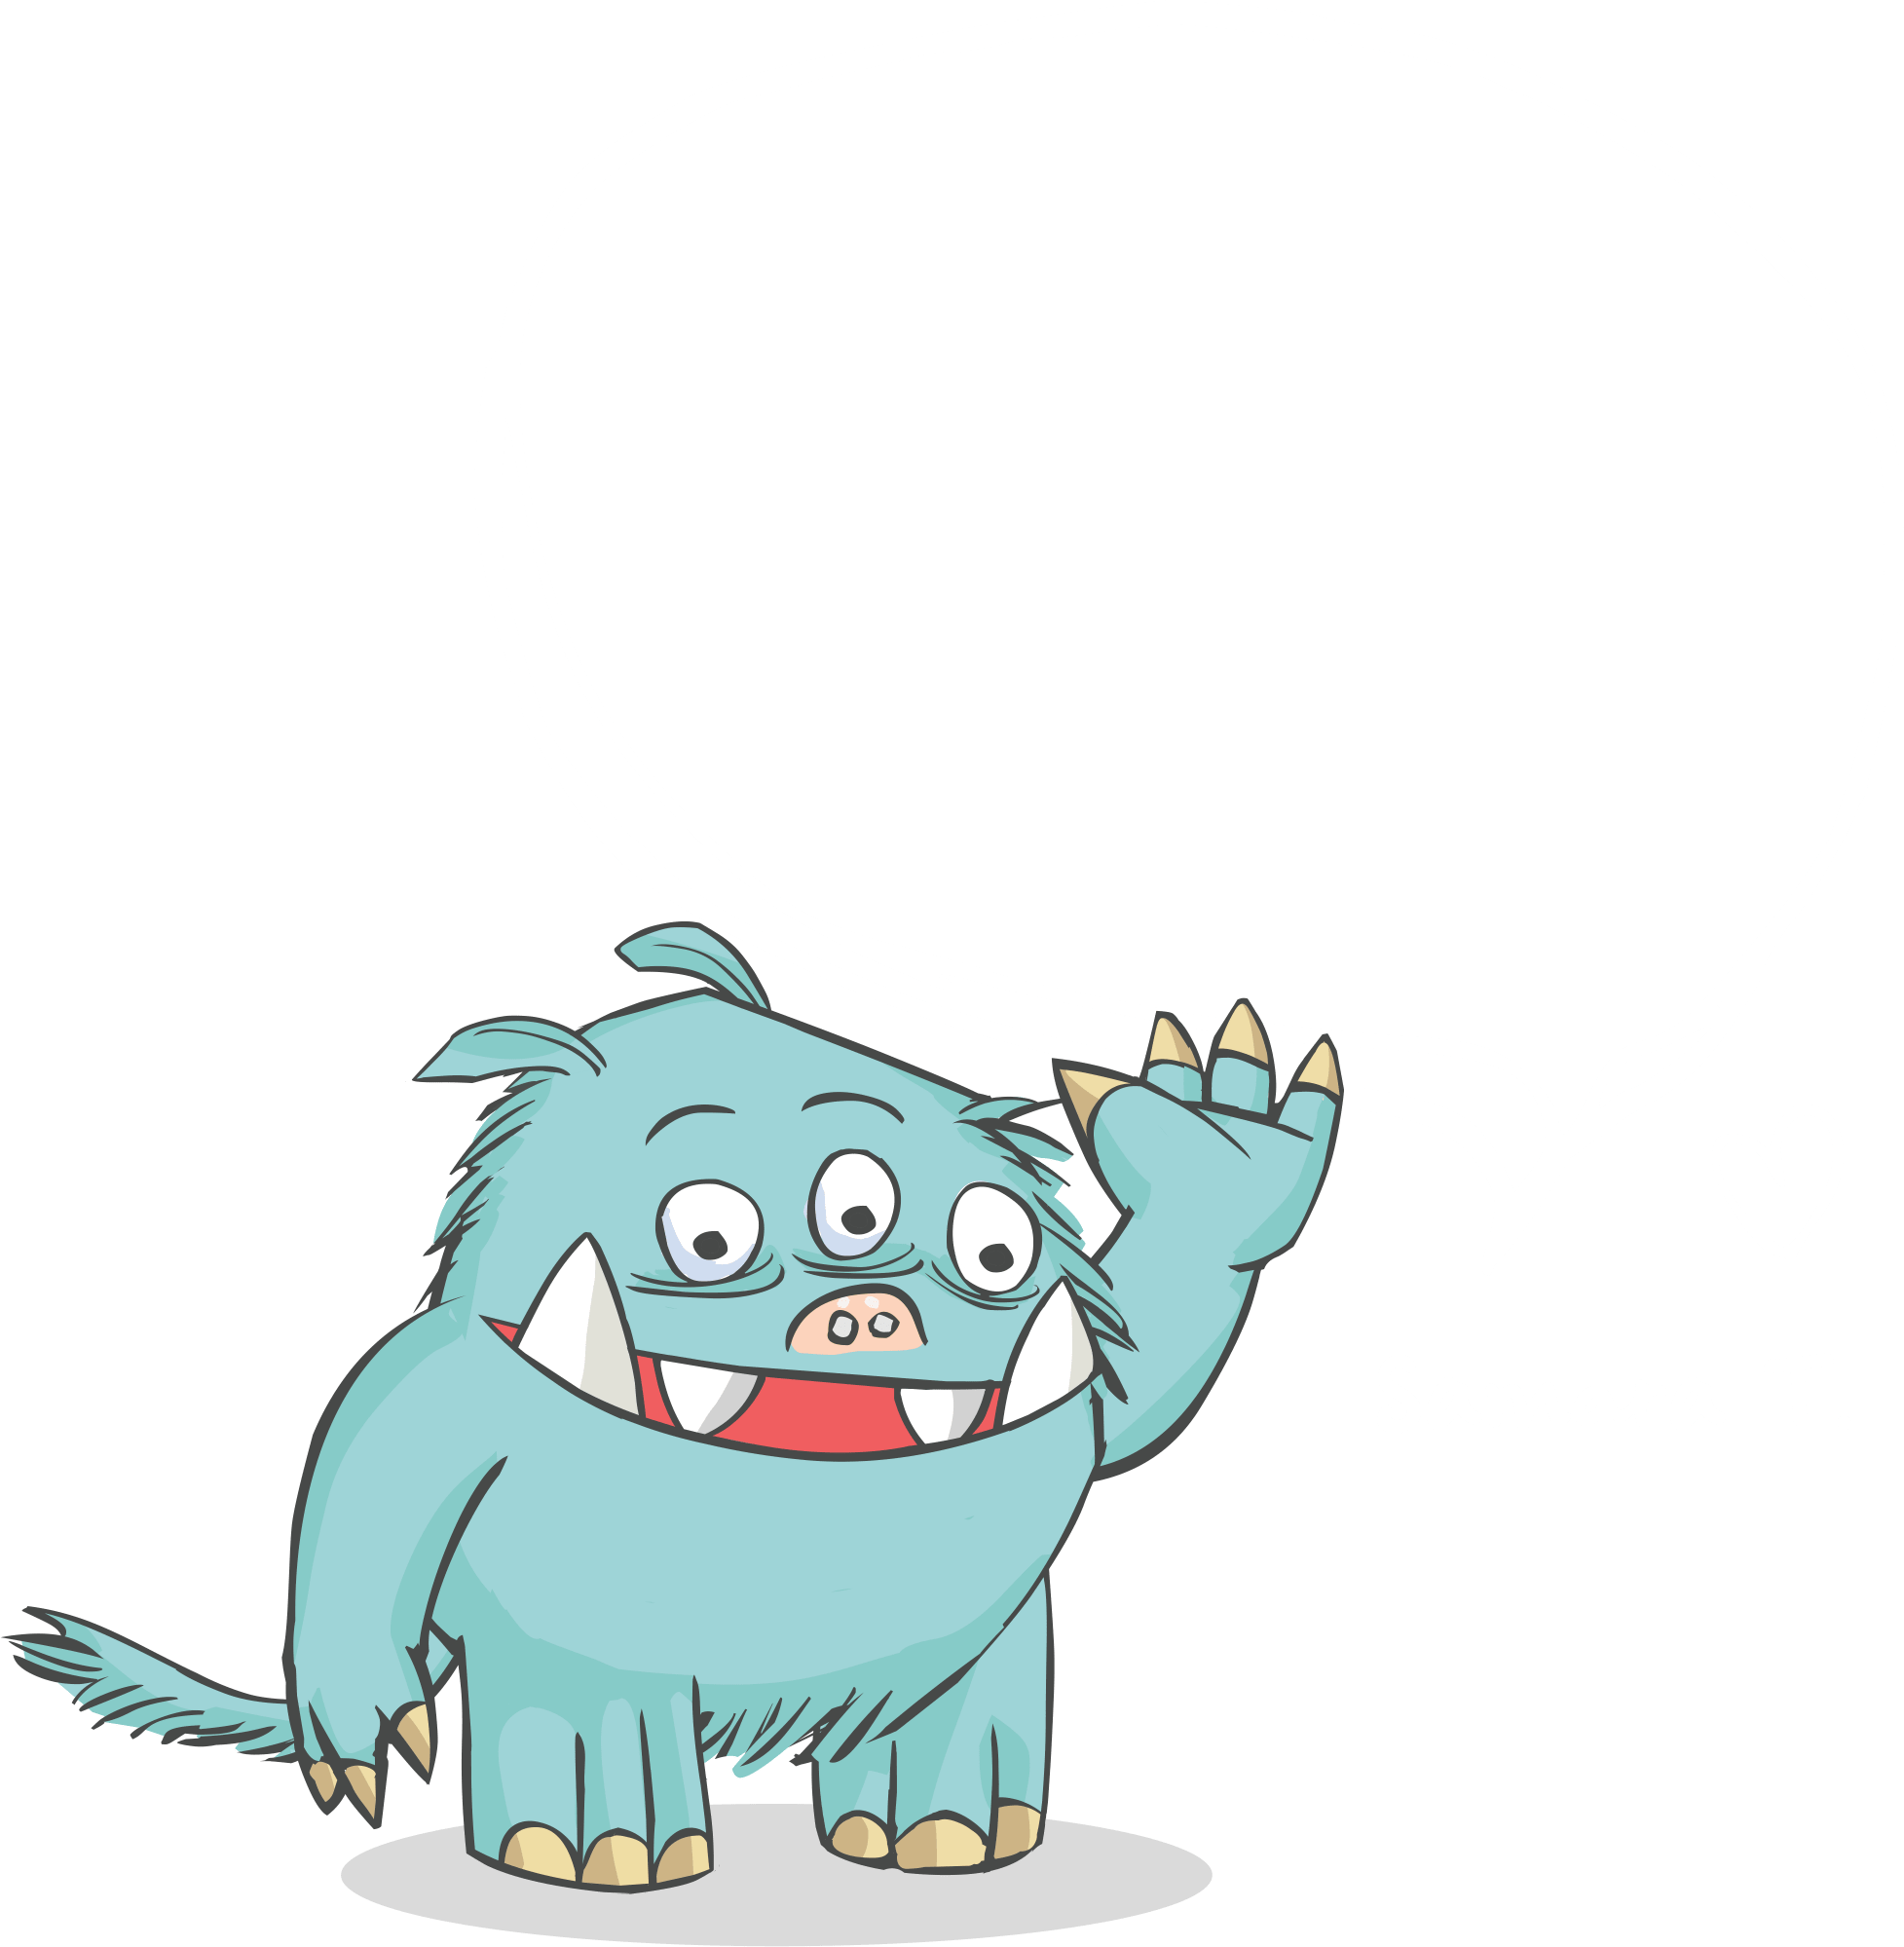 Emotional ABCs has literally saved me time, energy and stress. My Kids love Moody! They are so engaged with the lessons/activies. I am obsessed! Samara T.